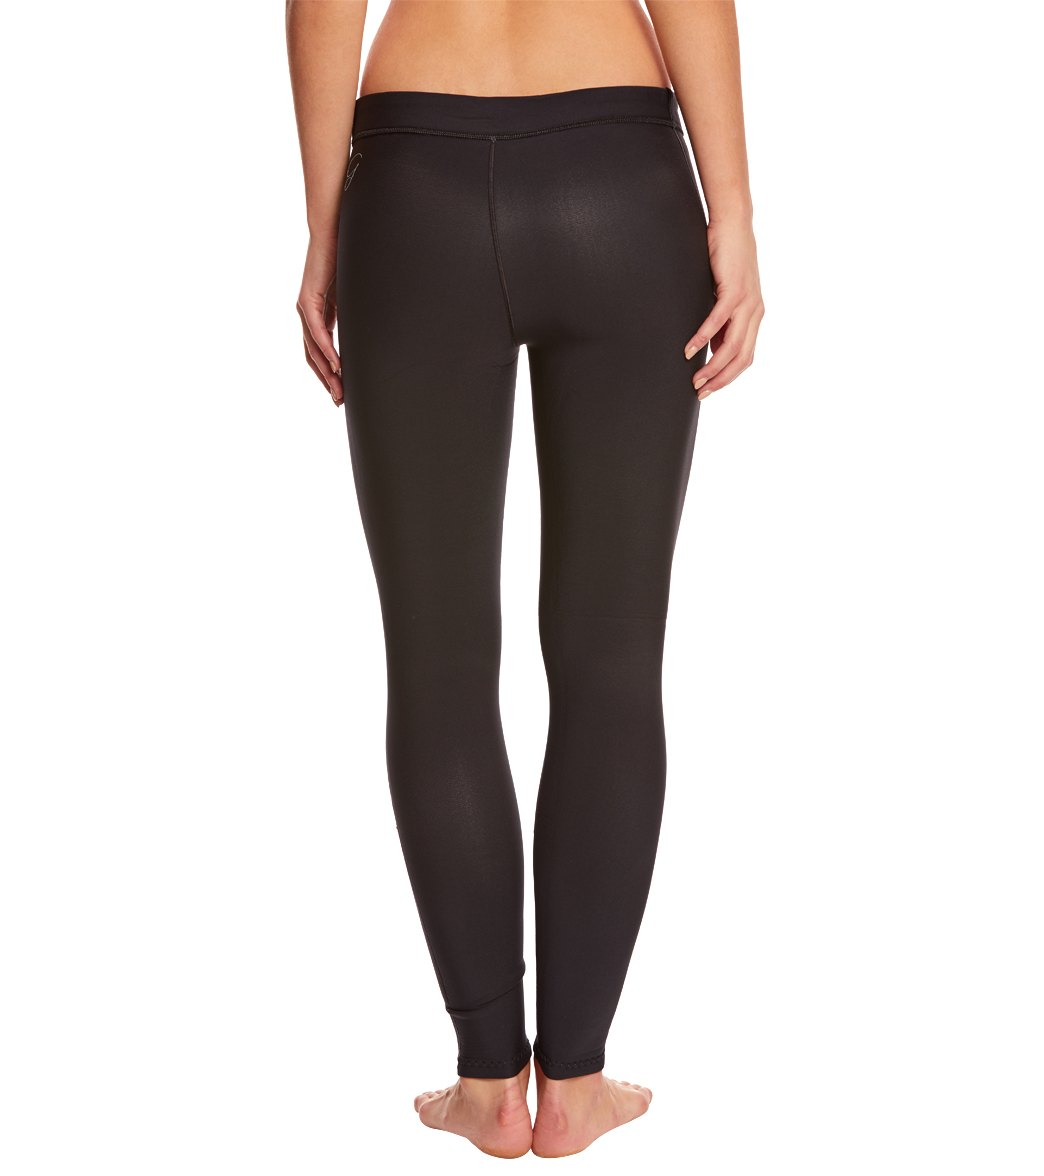 Rip Curl Women s 1mm G-Bomb Wetsuit Pant at SwimOutlet.com - Free ... 8de481f81